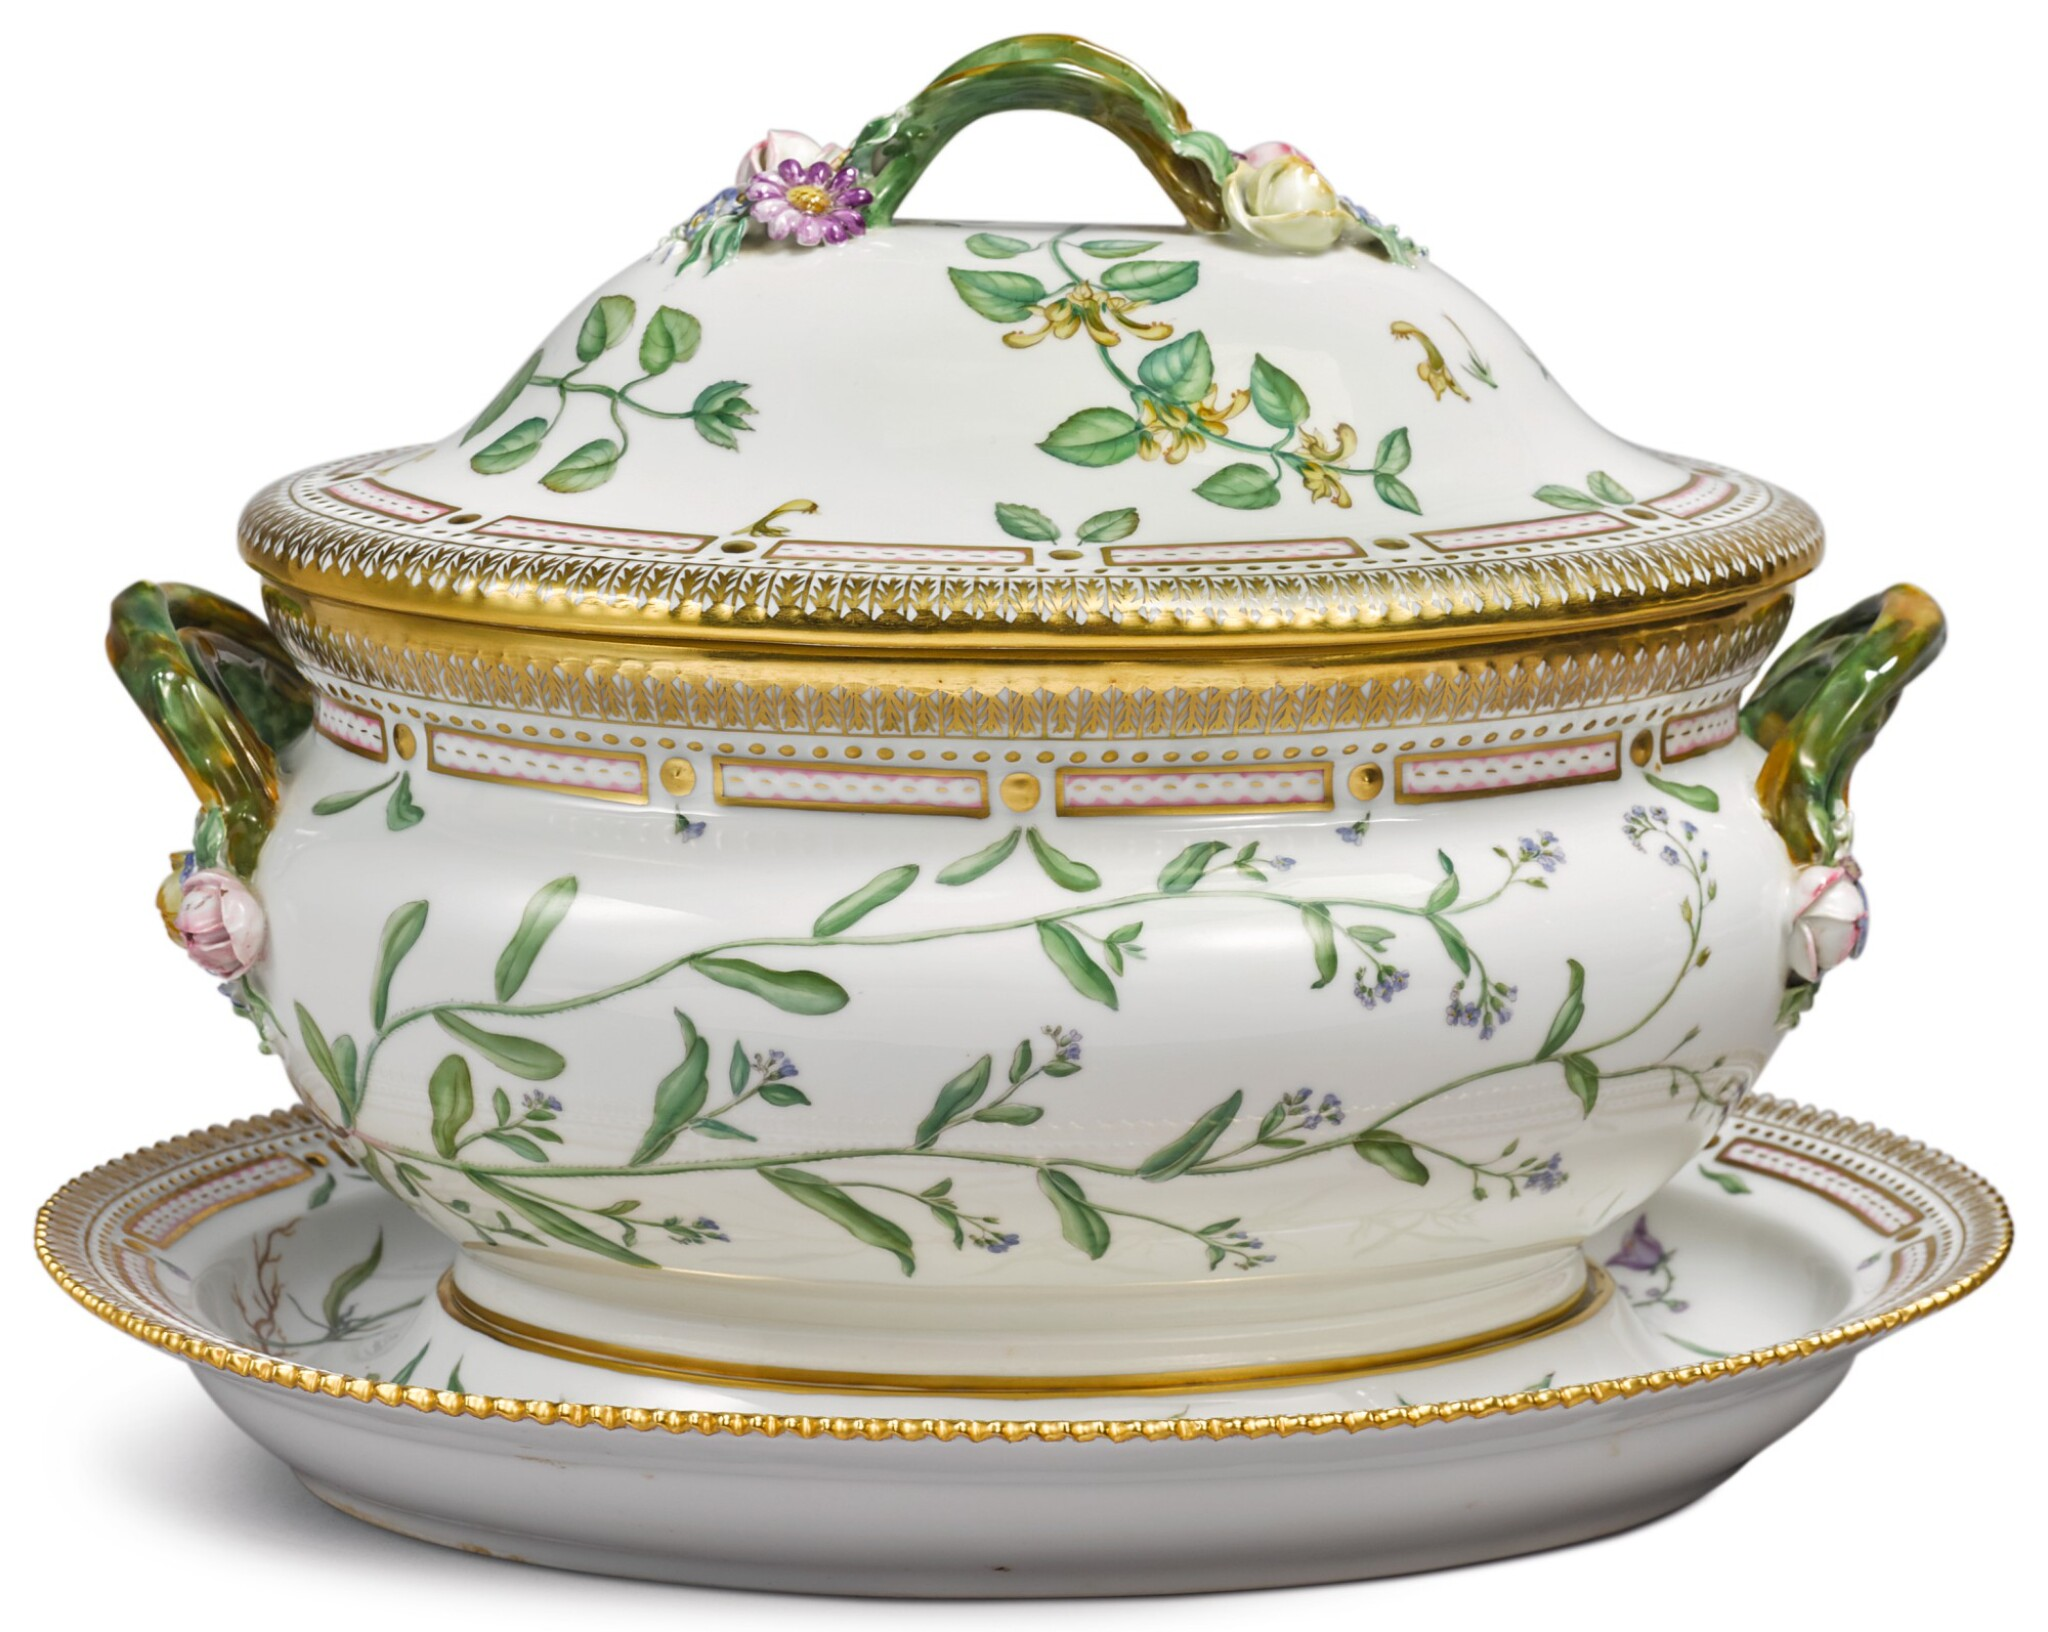 View full screen - View 1 of Lot 150. A ROYAL COPENHAGEN 'FLORA DANICA' OVAL TUREEN, COVER AND STAND, MODERN.